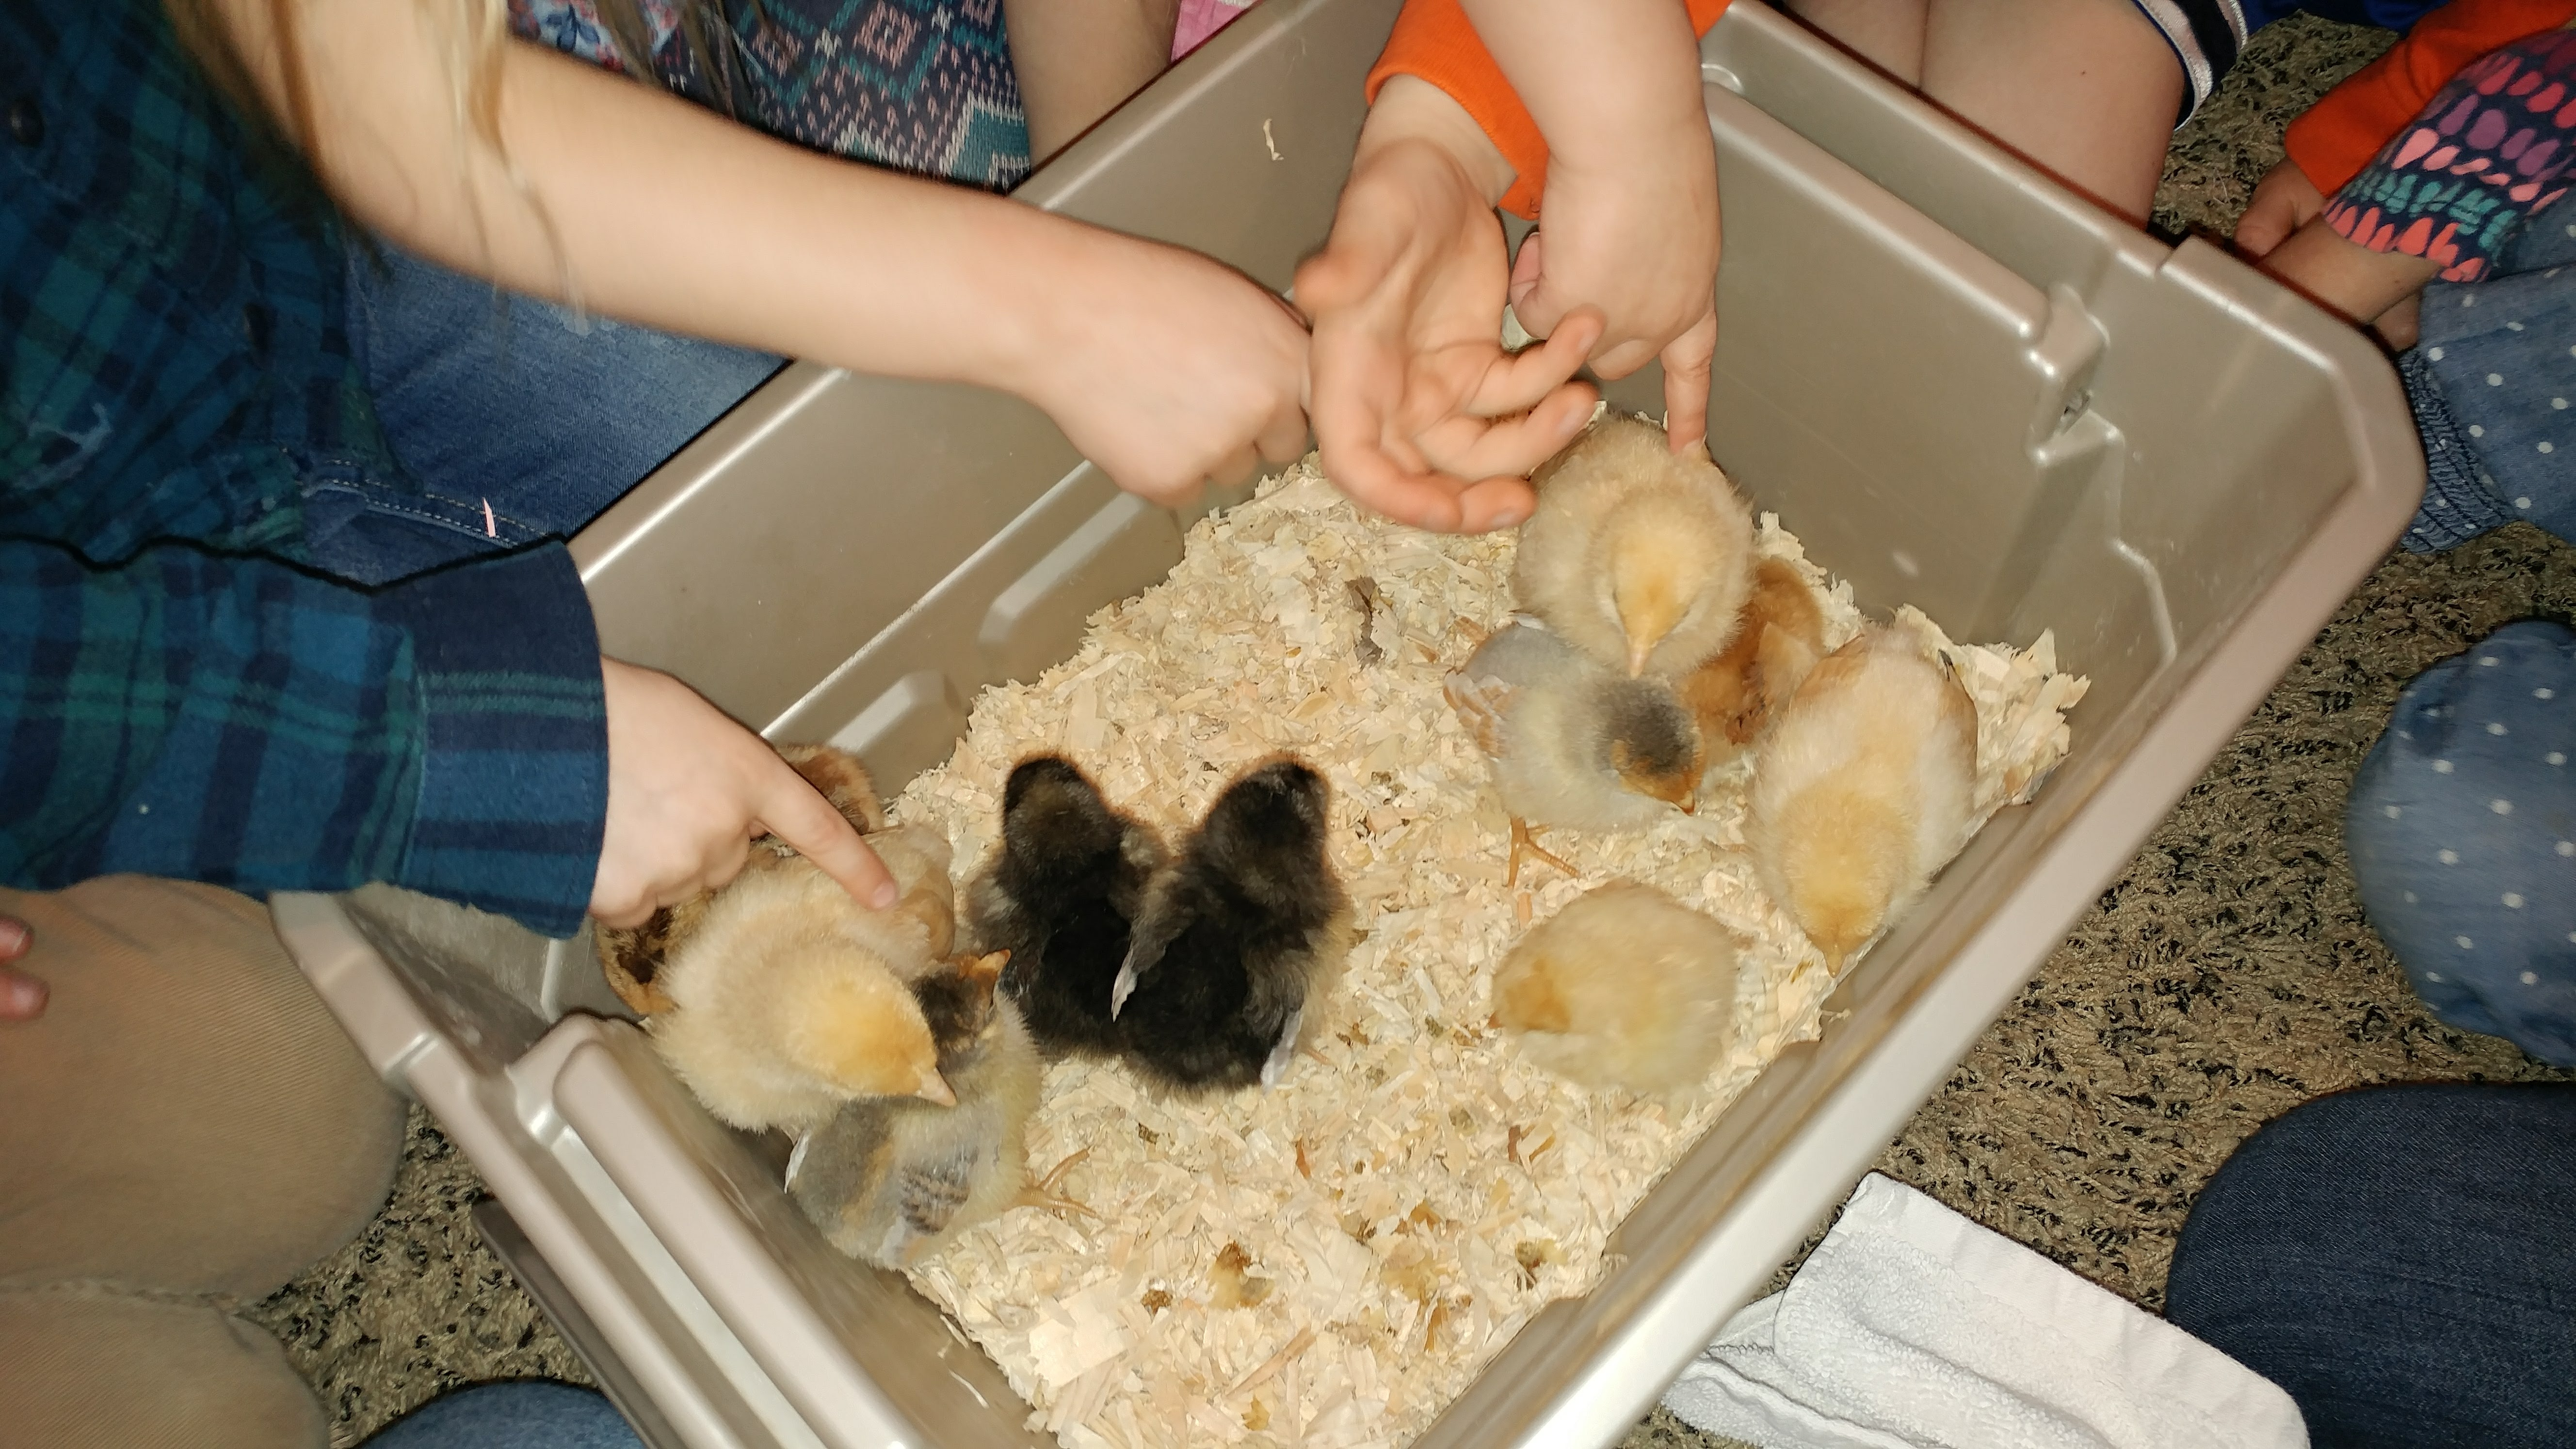 Talking about baby animals, we got to meet some new chicks!